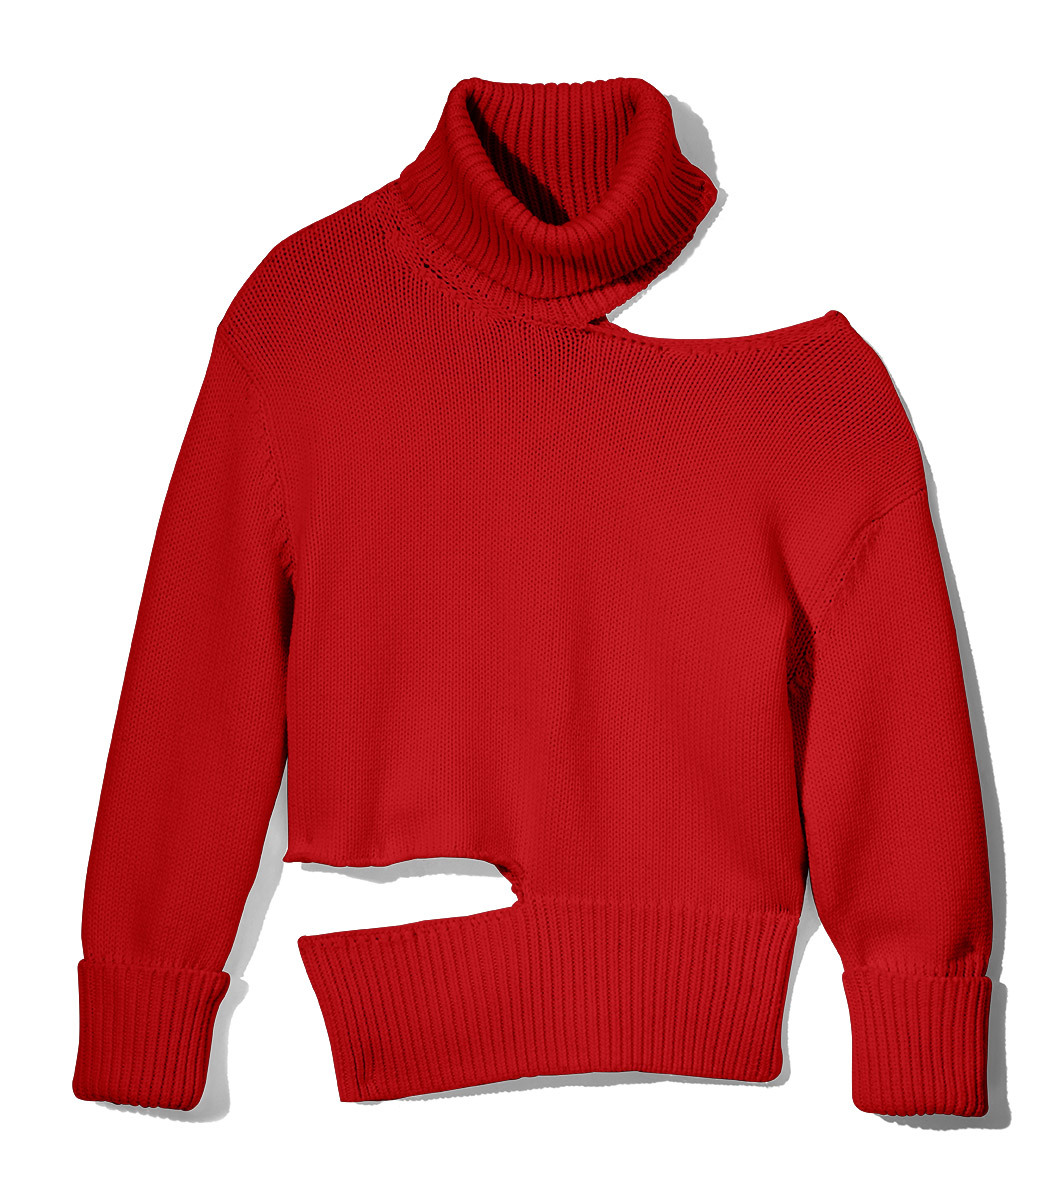 Need something to wear for Red Turtleneck Sweaters? Shop at the world's leading online retailer now!Shop Red Turtleneck Sweaters at great prices with fast shipping, save big everyday at with wholesale prices, explore our products and enjoy shopping!